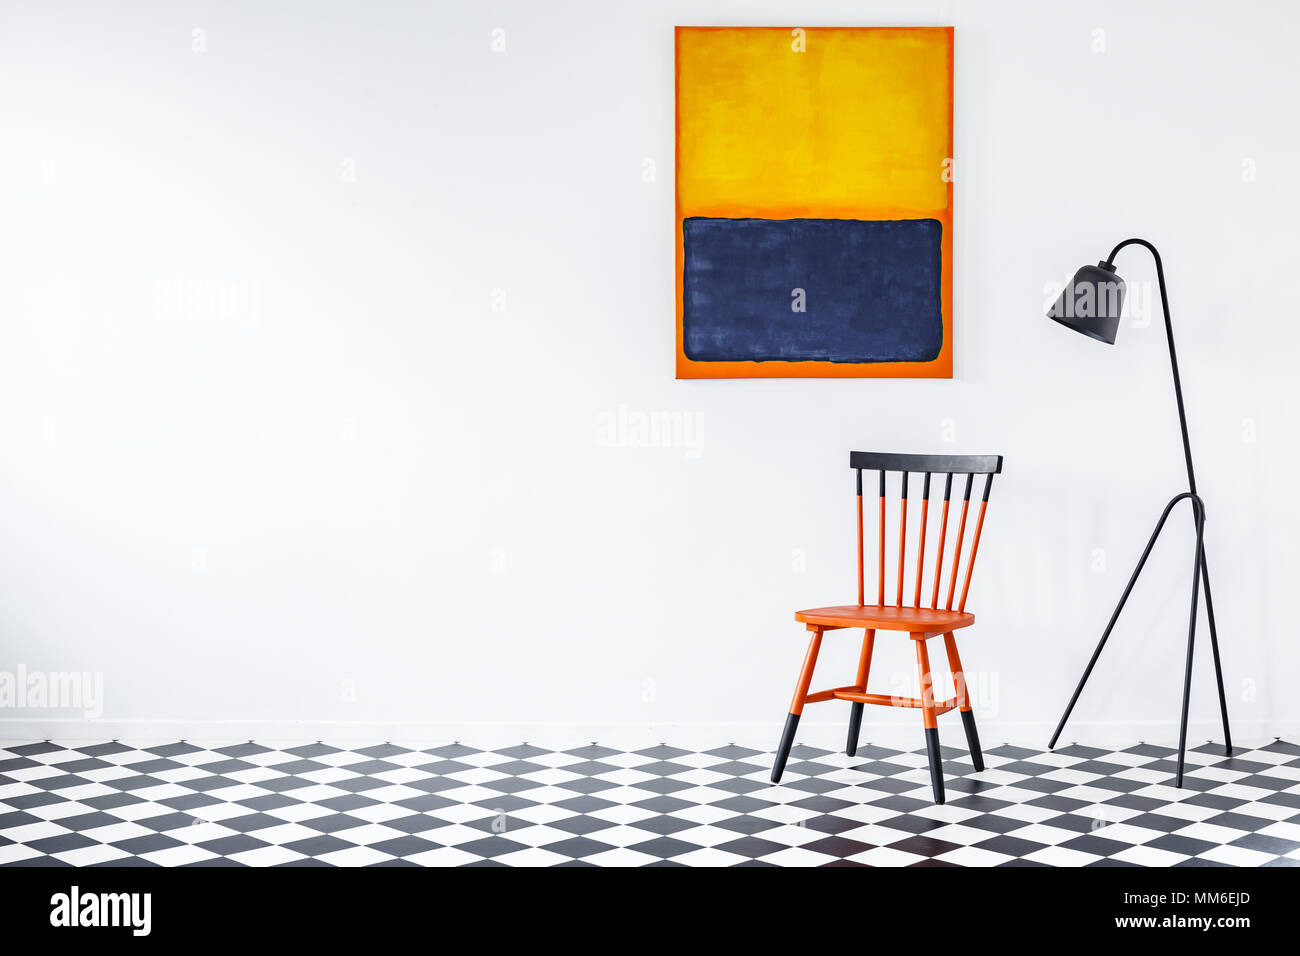 Black Lamp Next To Duocolor Chair On Checkerboard Wall In Living